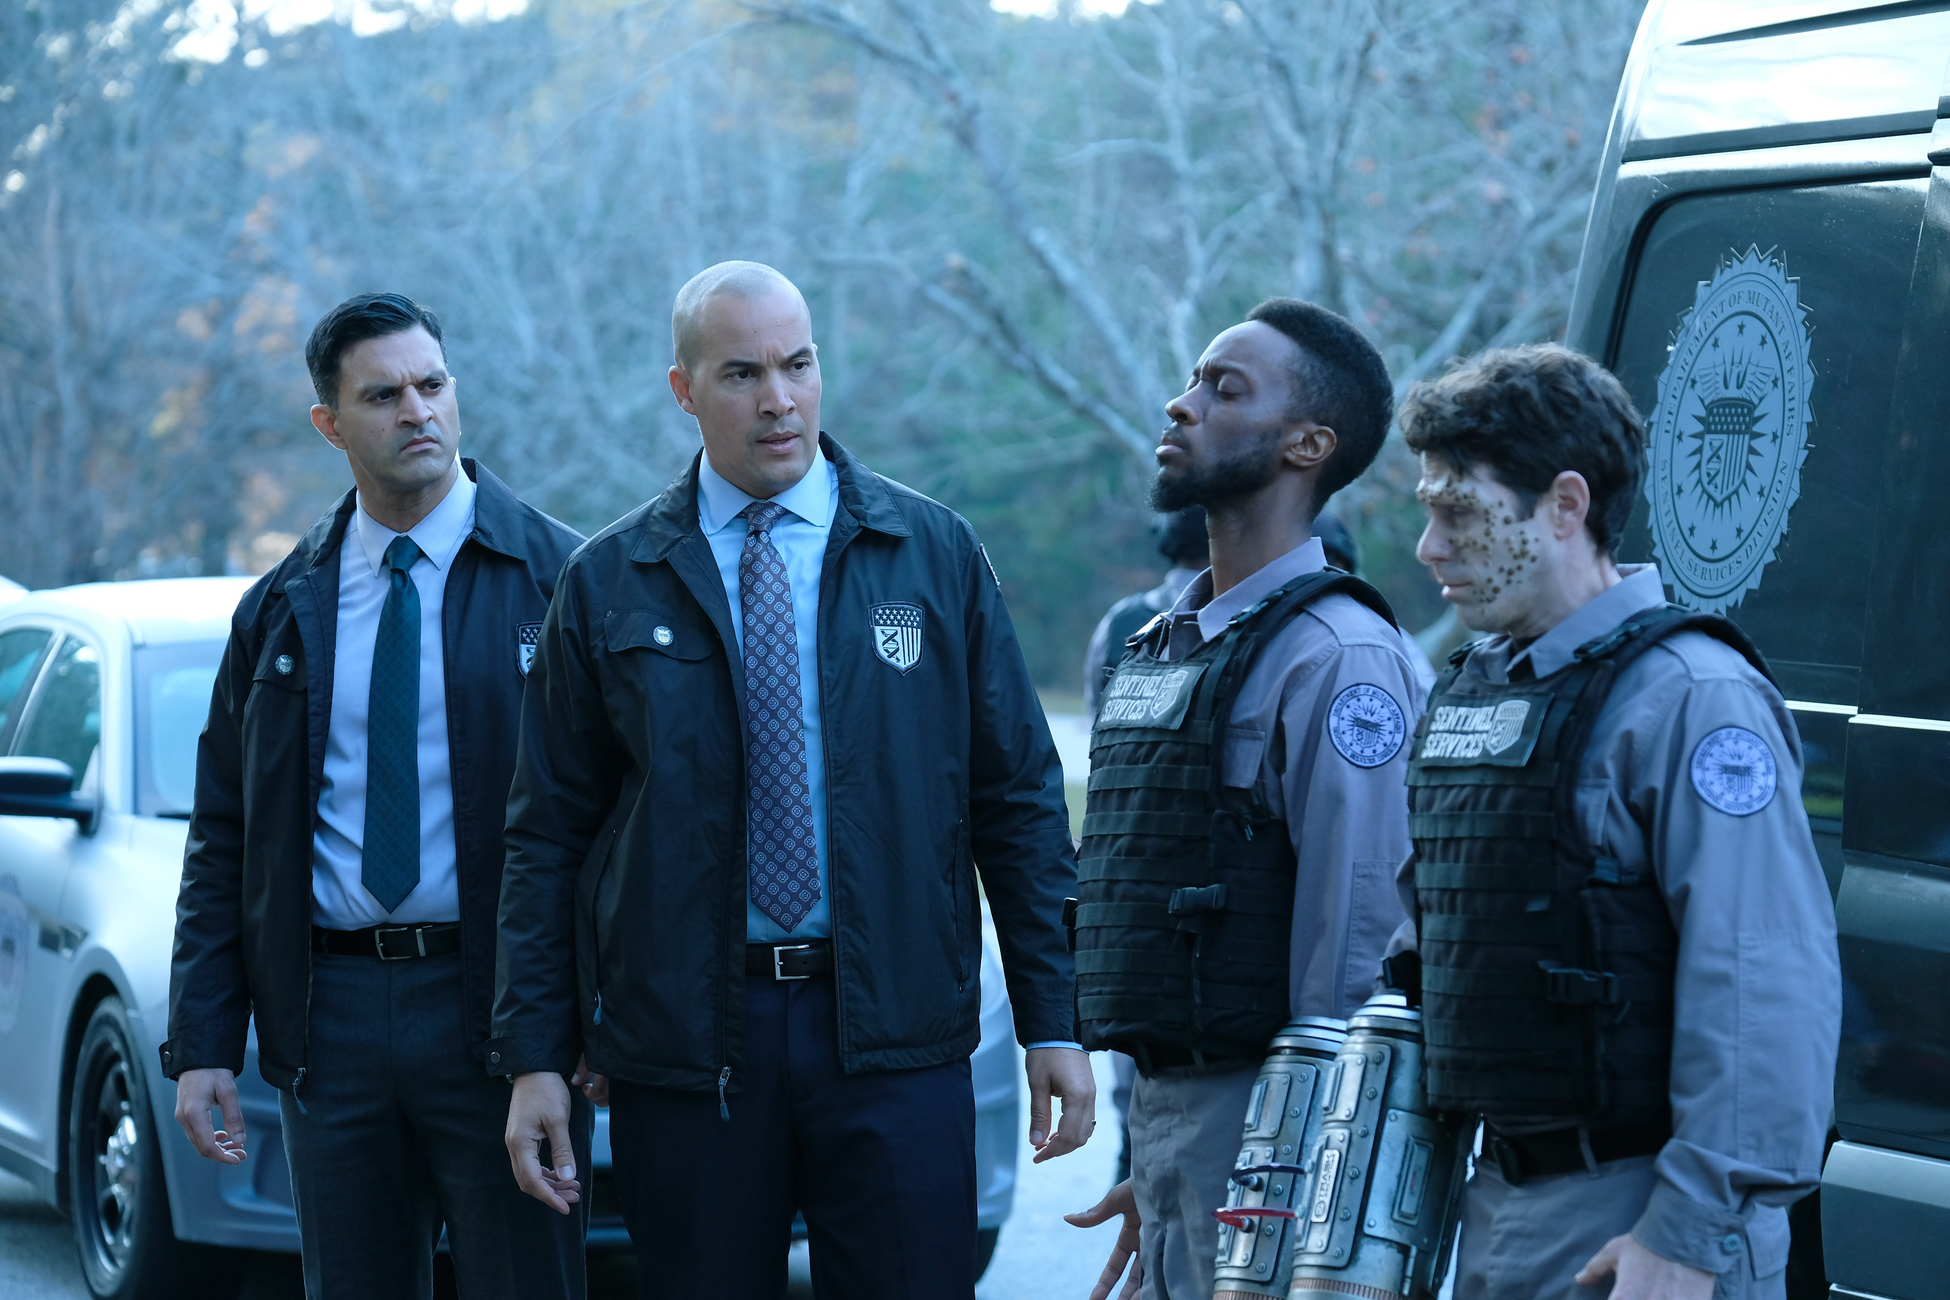 Coby Bell, David Shae, Elliott Dixon, and Vishesh Chachra in The Gifted (2017)